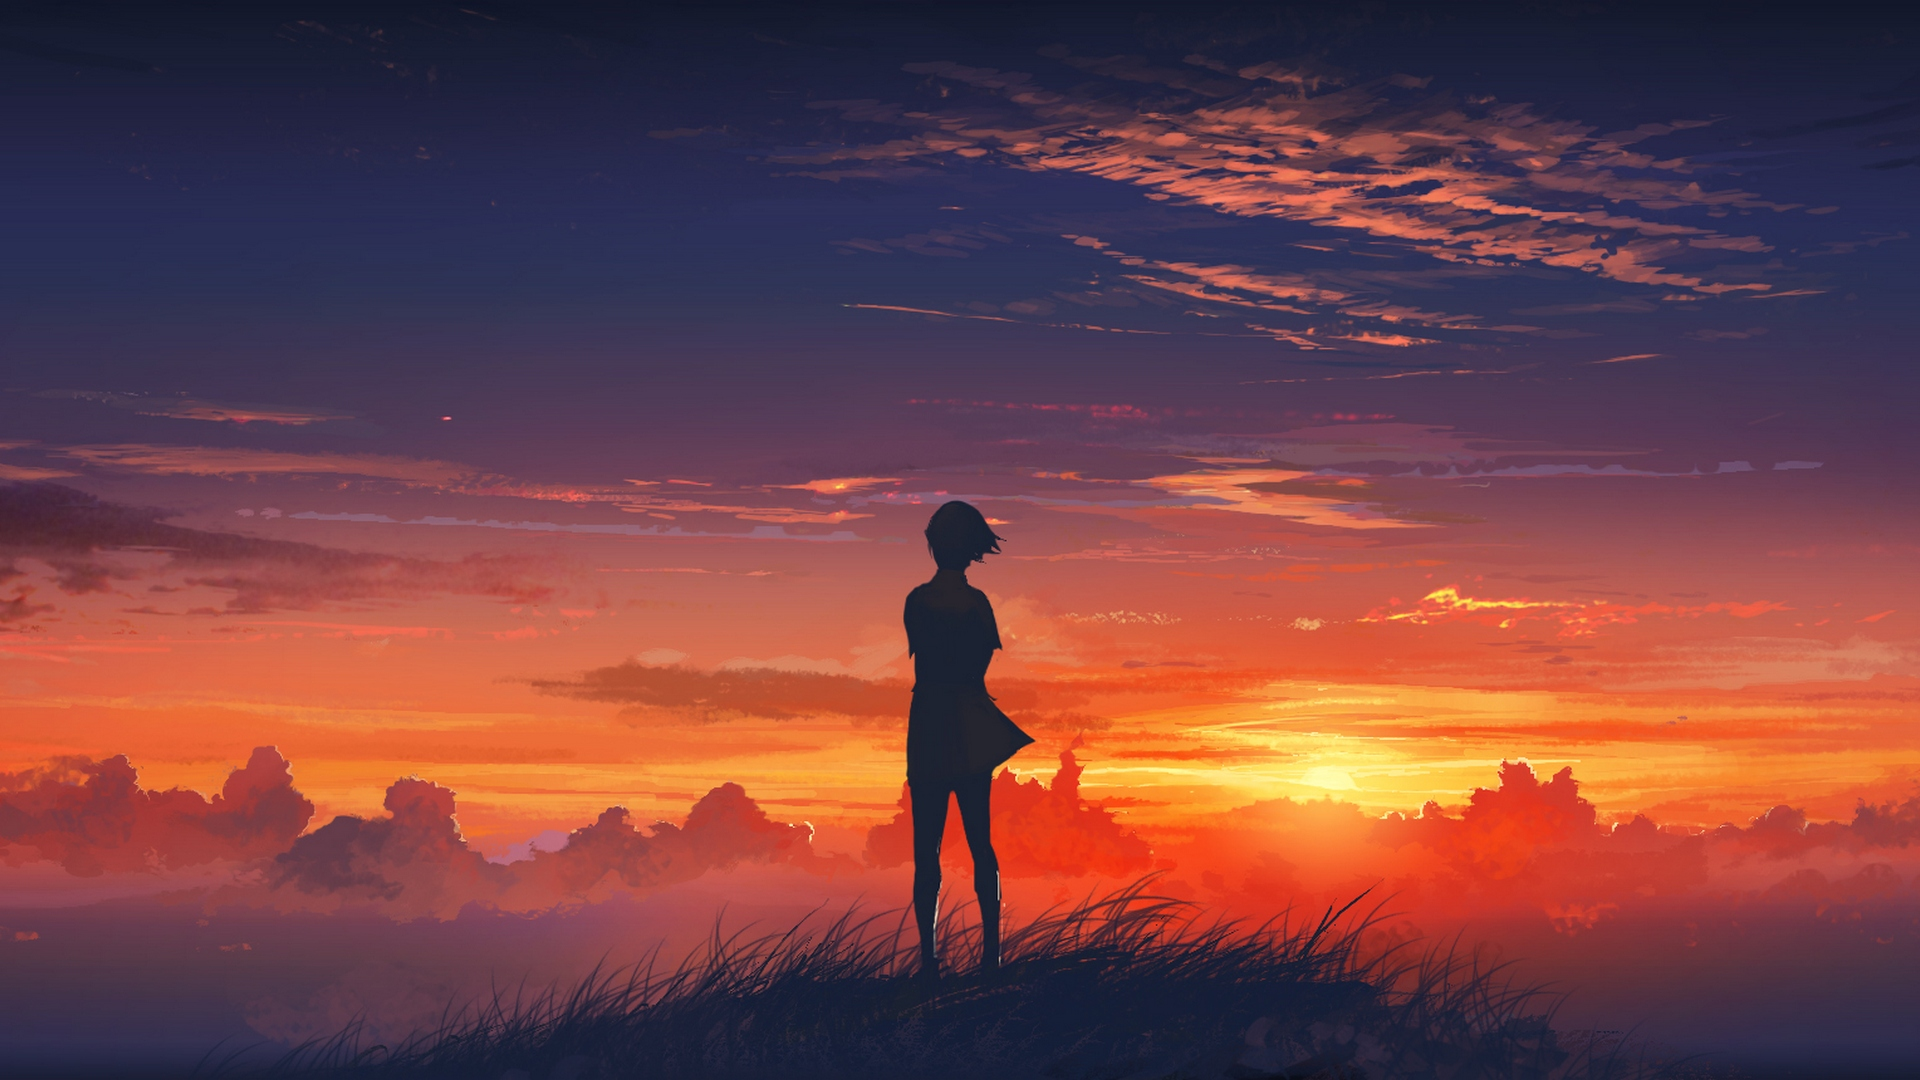 Sunset View Anime HD wallpaper 1920x1080